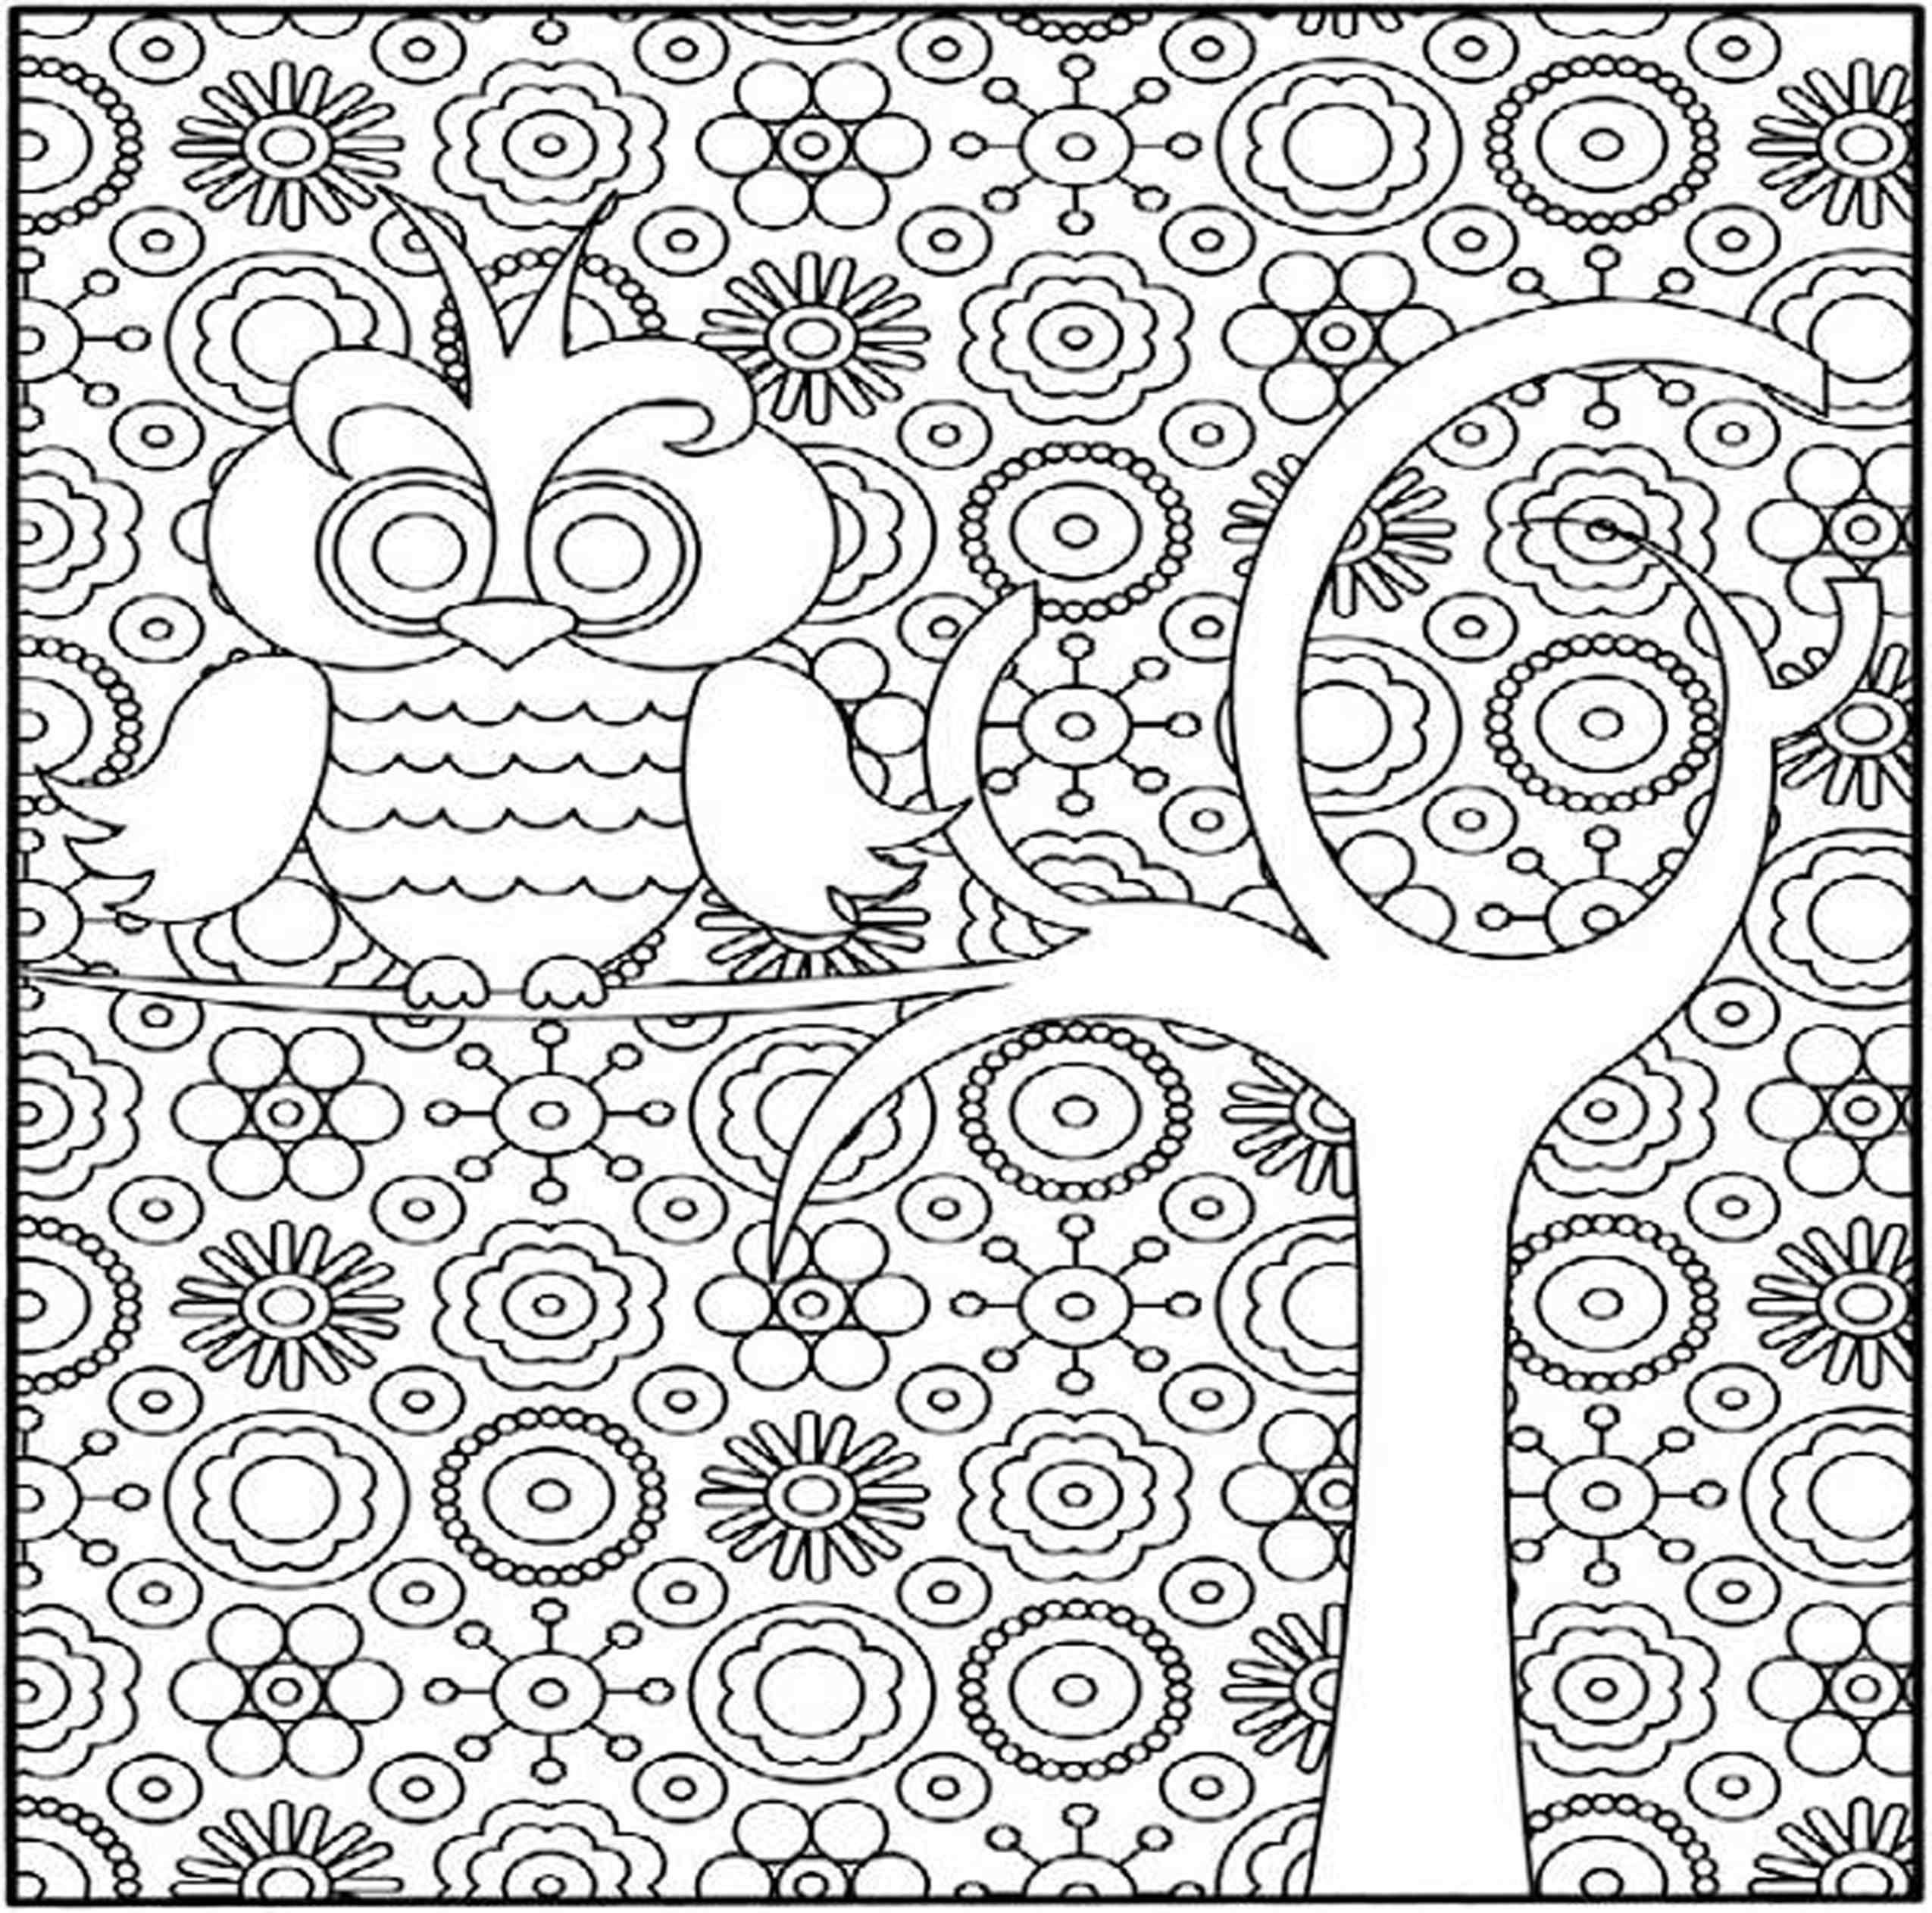 intricate coloring pages for kids free printable abstract coloring pages for adults kids coloring intricate for pages